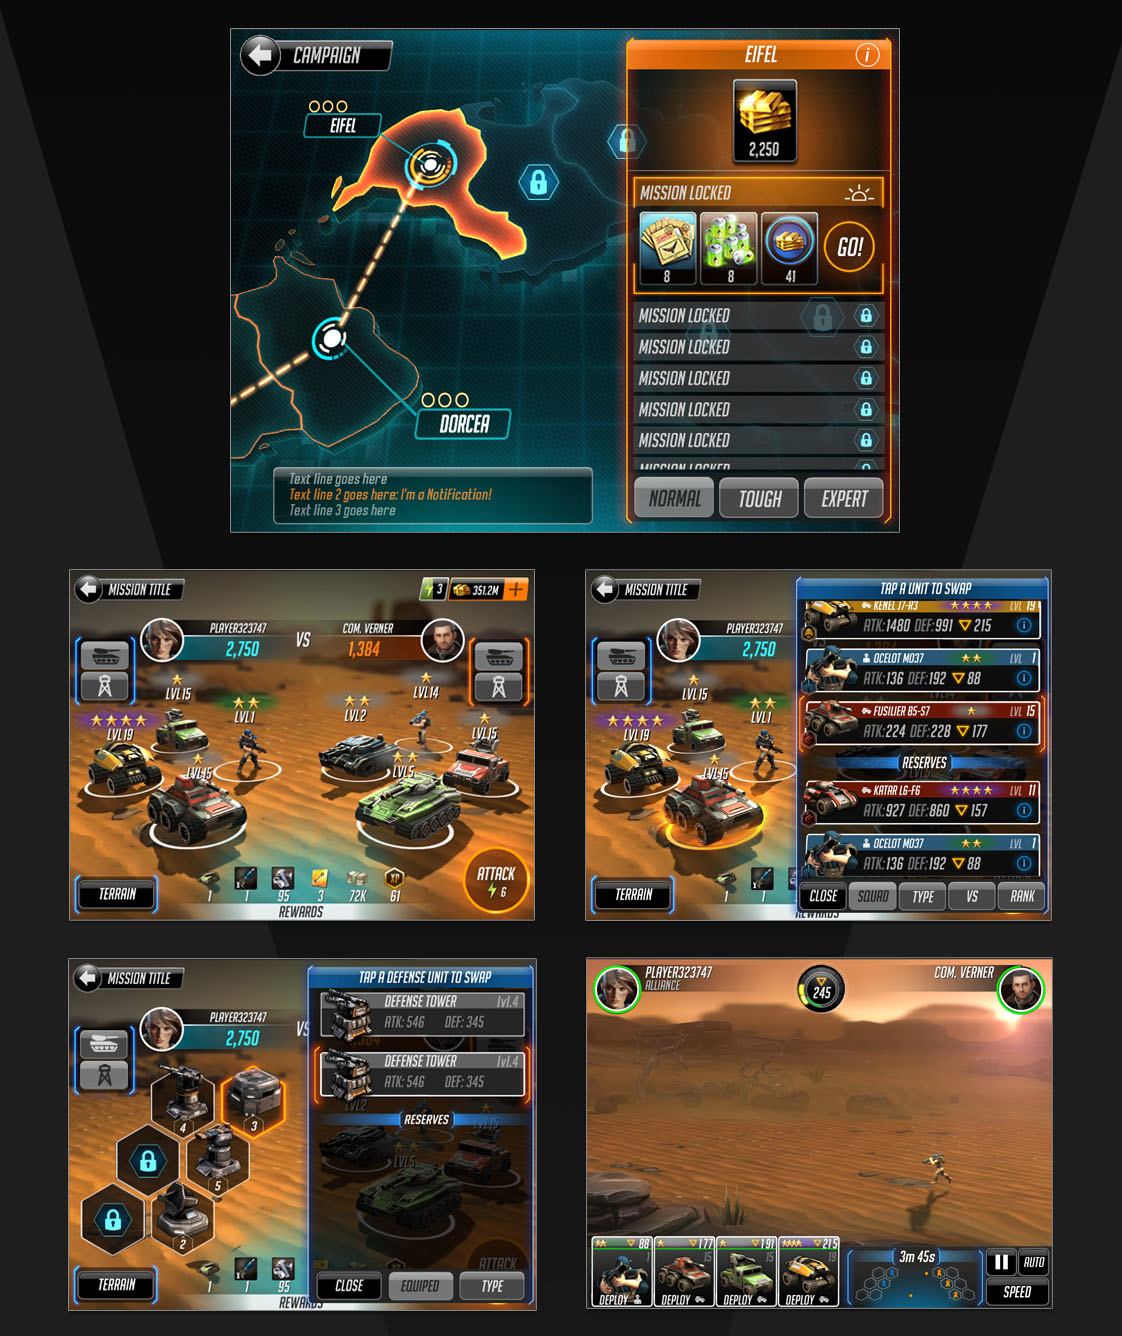 Campaign Map UI and Mission Briefing set up where players can organize their units and defense towers prior to battle.